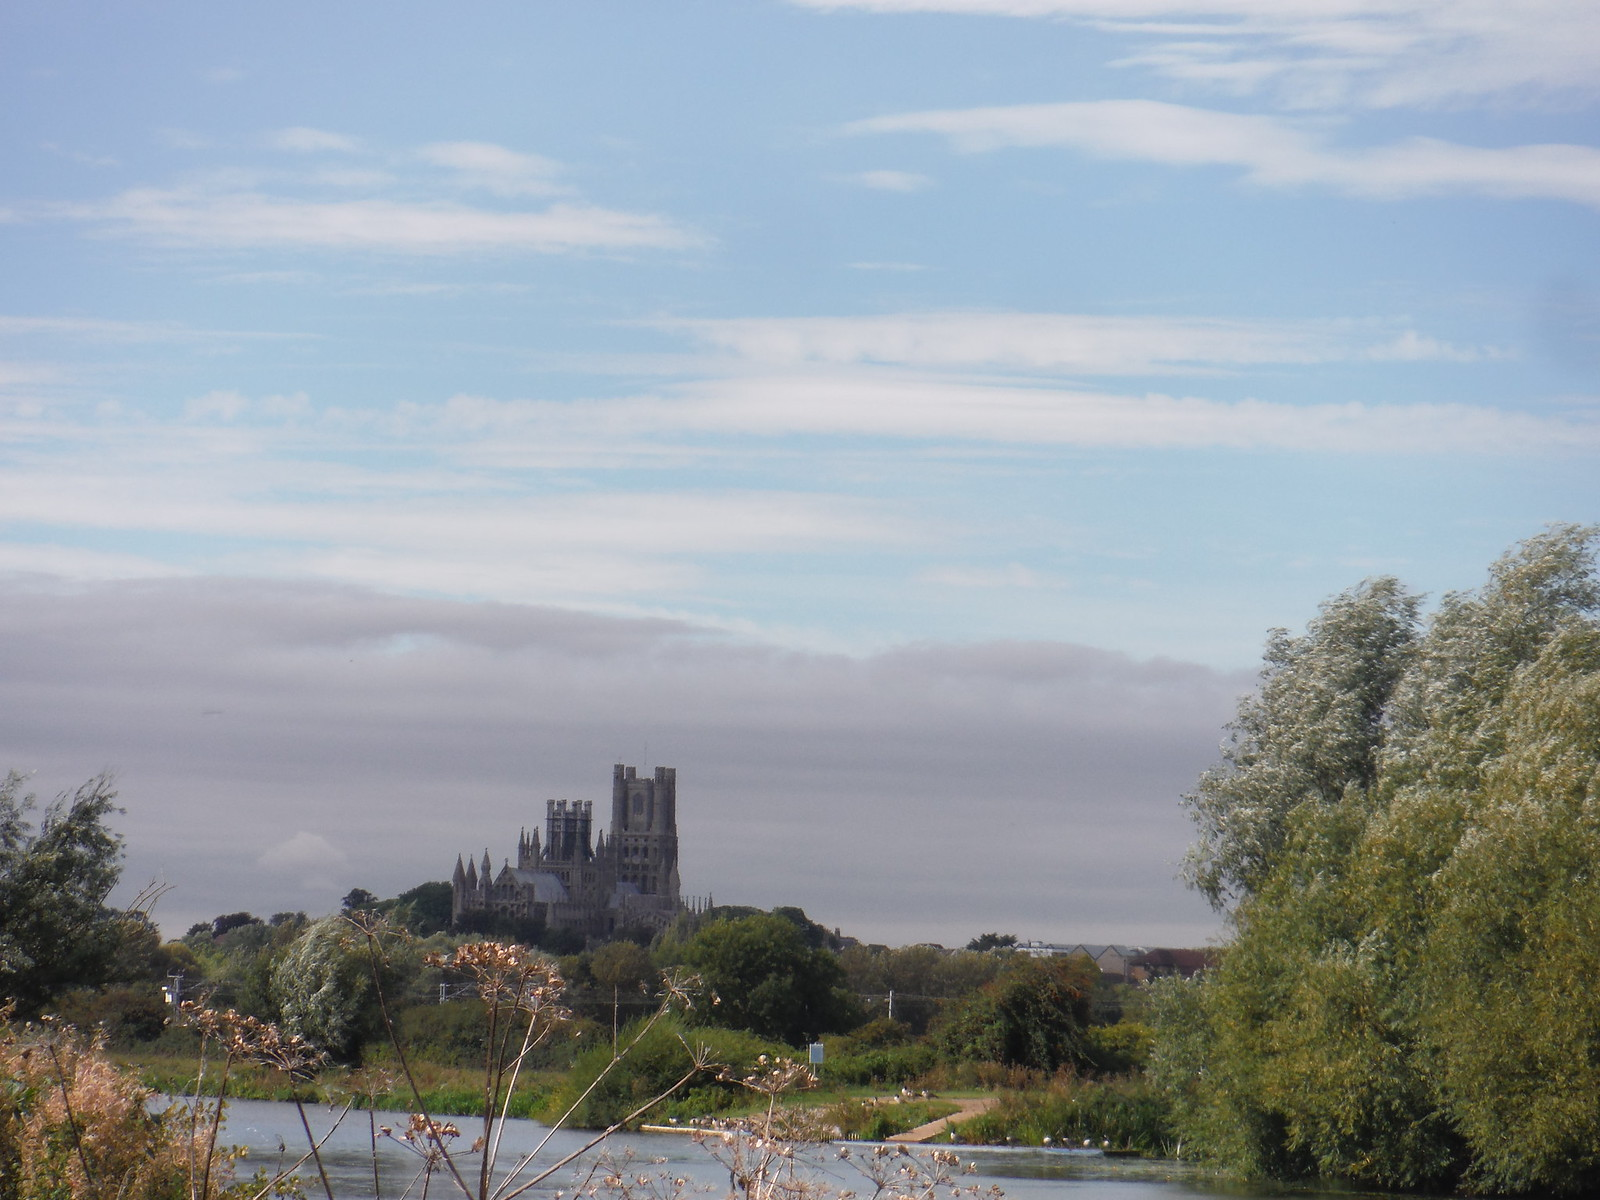 Ely Cathedral from River Great Ouse, near Cuckoo Bridge SWC Walk 118 Ely Circular (off-route off the Ely Extension)